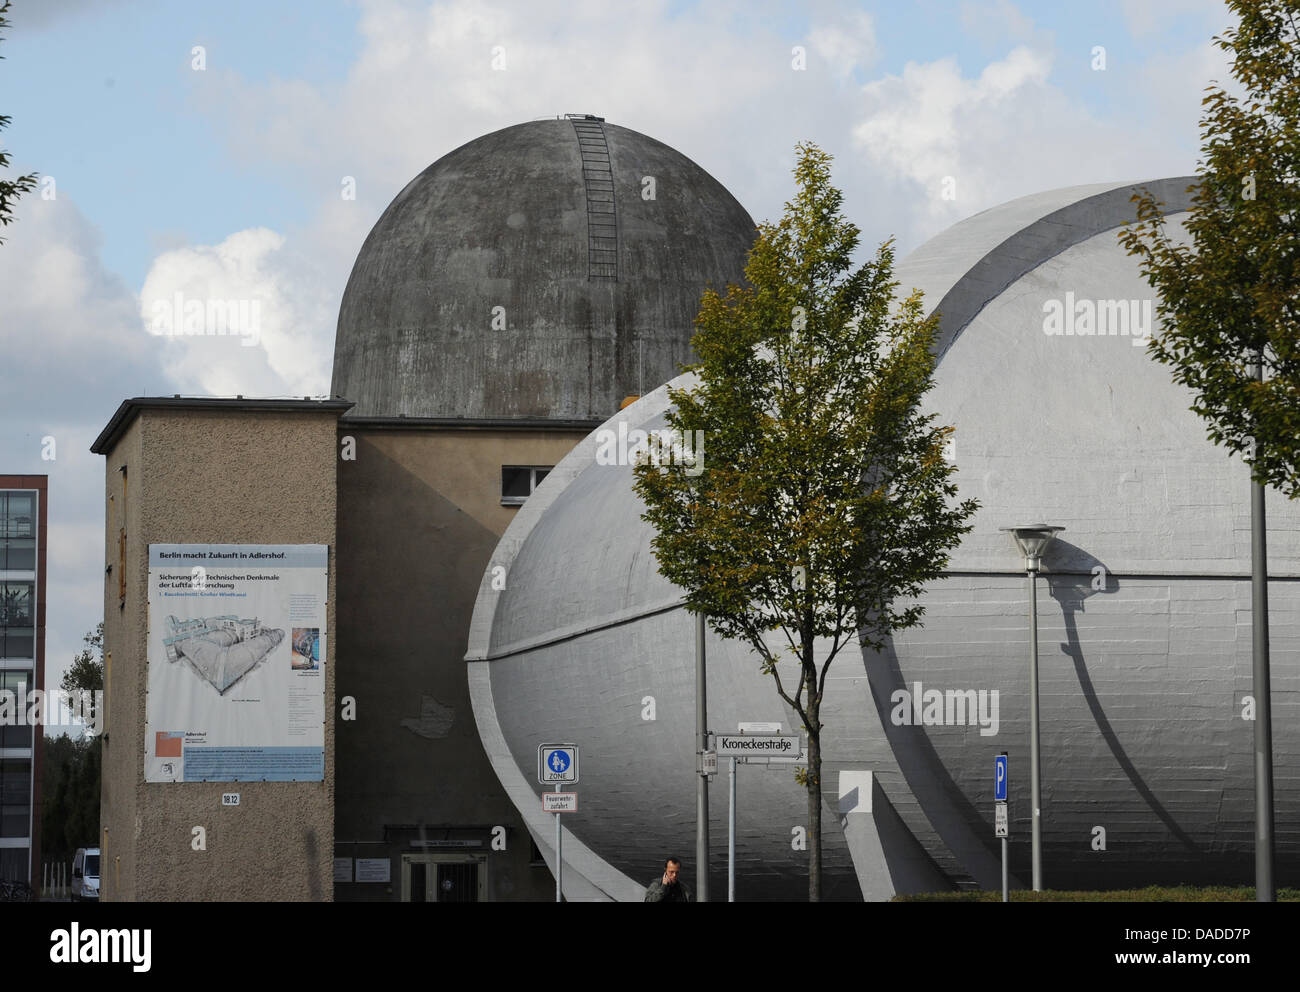 The large windtunnel is seen at the Aerodynamic Park on the campus of Humboldt University in Berlin-Adlershof in - Stock Image